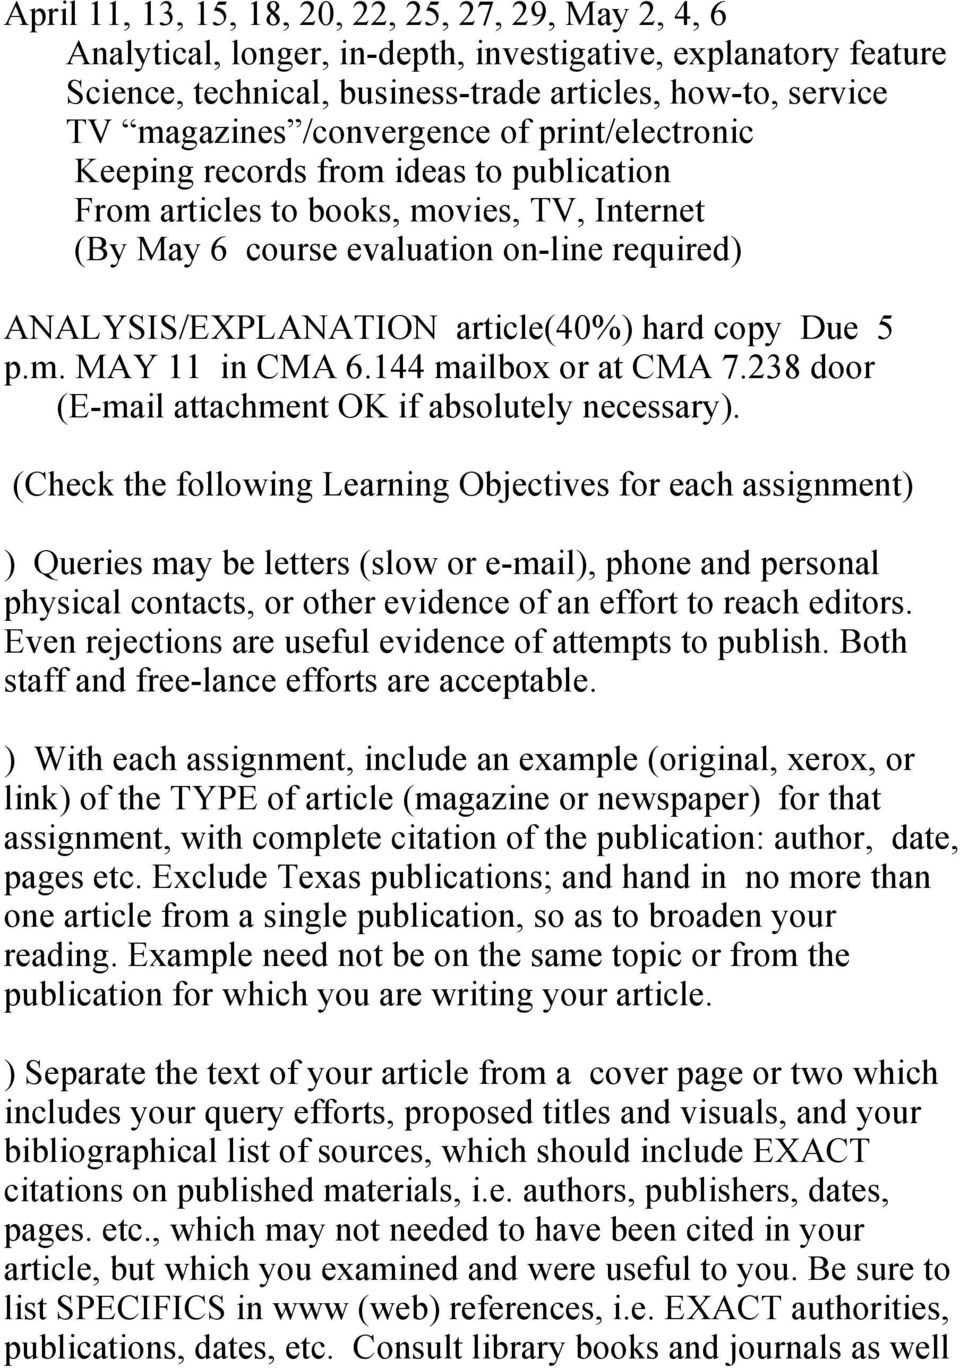 hard copy Due 5 p.m. MAY 11 in CMA 6.144 mailbox or at CMA 7.238 door (E-mail attachment OK if absolutely necessary).